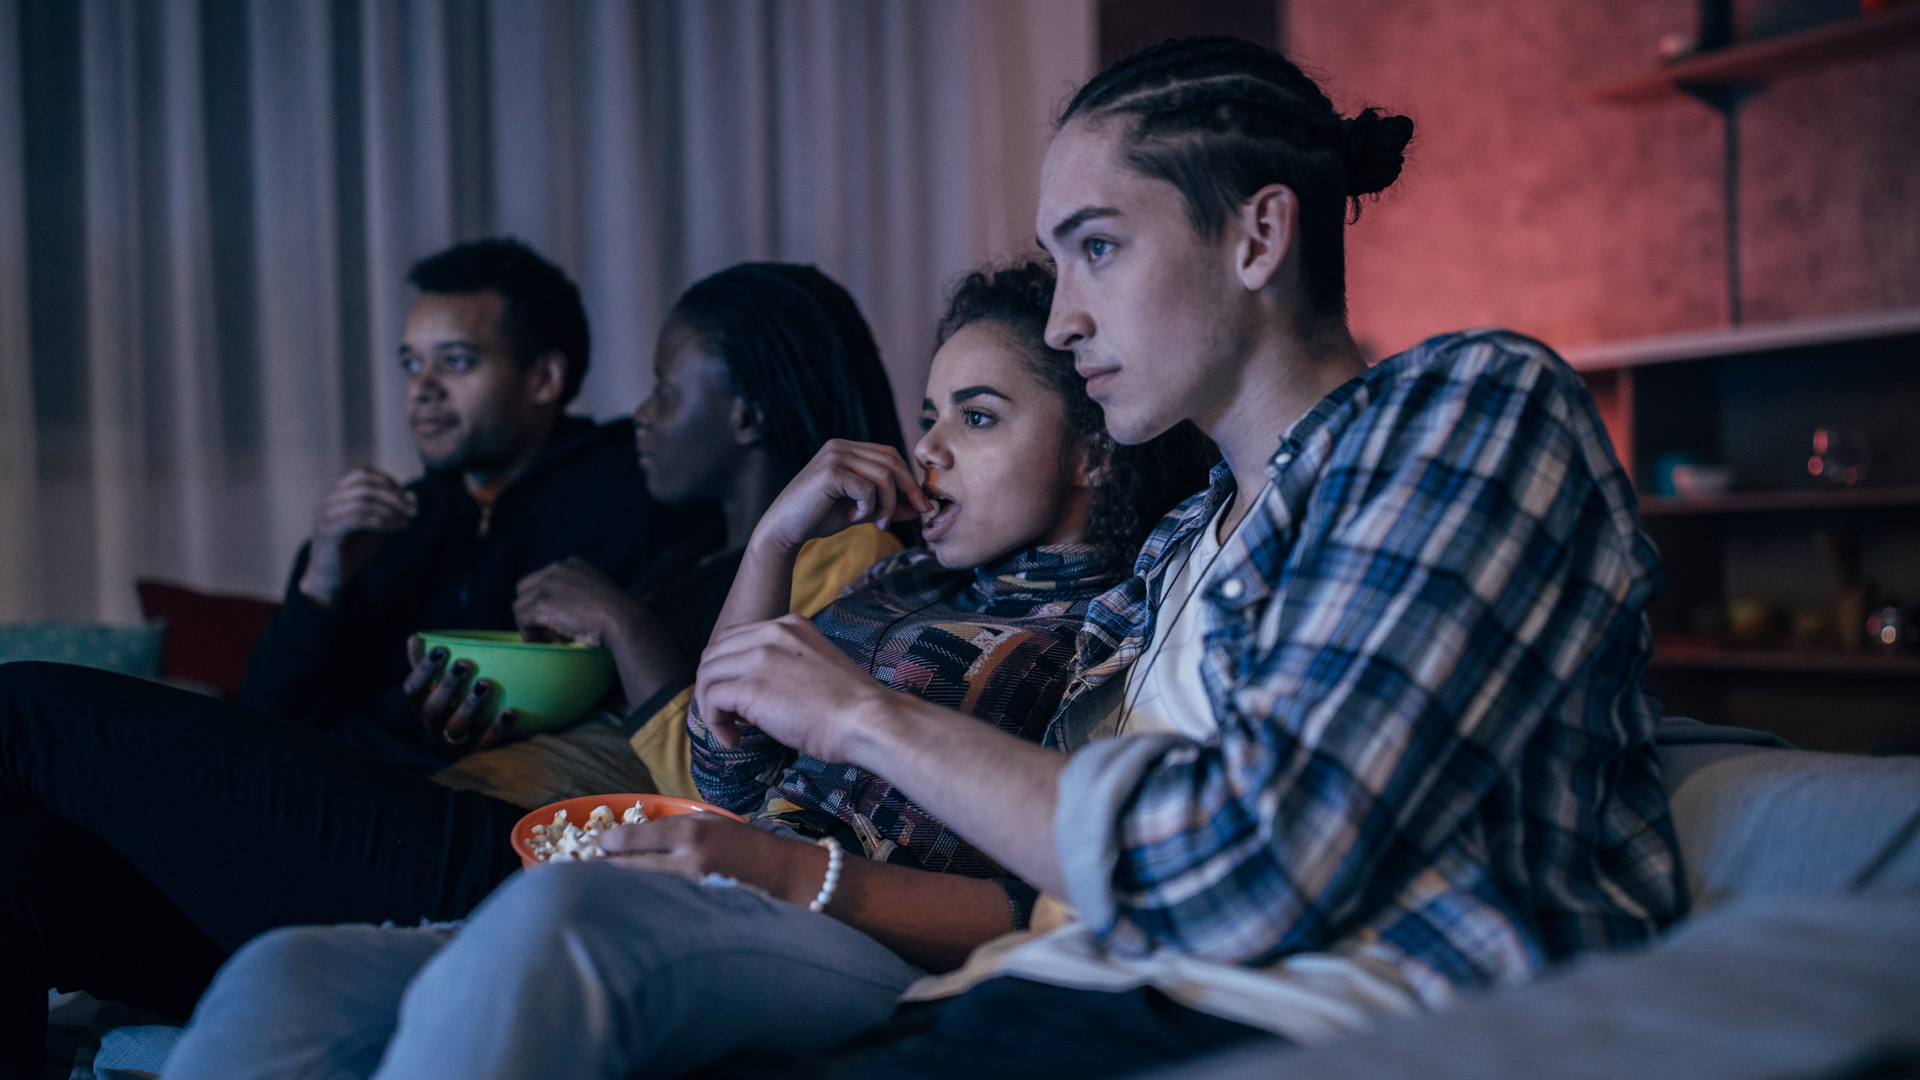 Younger consumers like Gen Z and millennials are more willing to pay extra to avoid streaming ads.